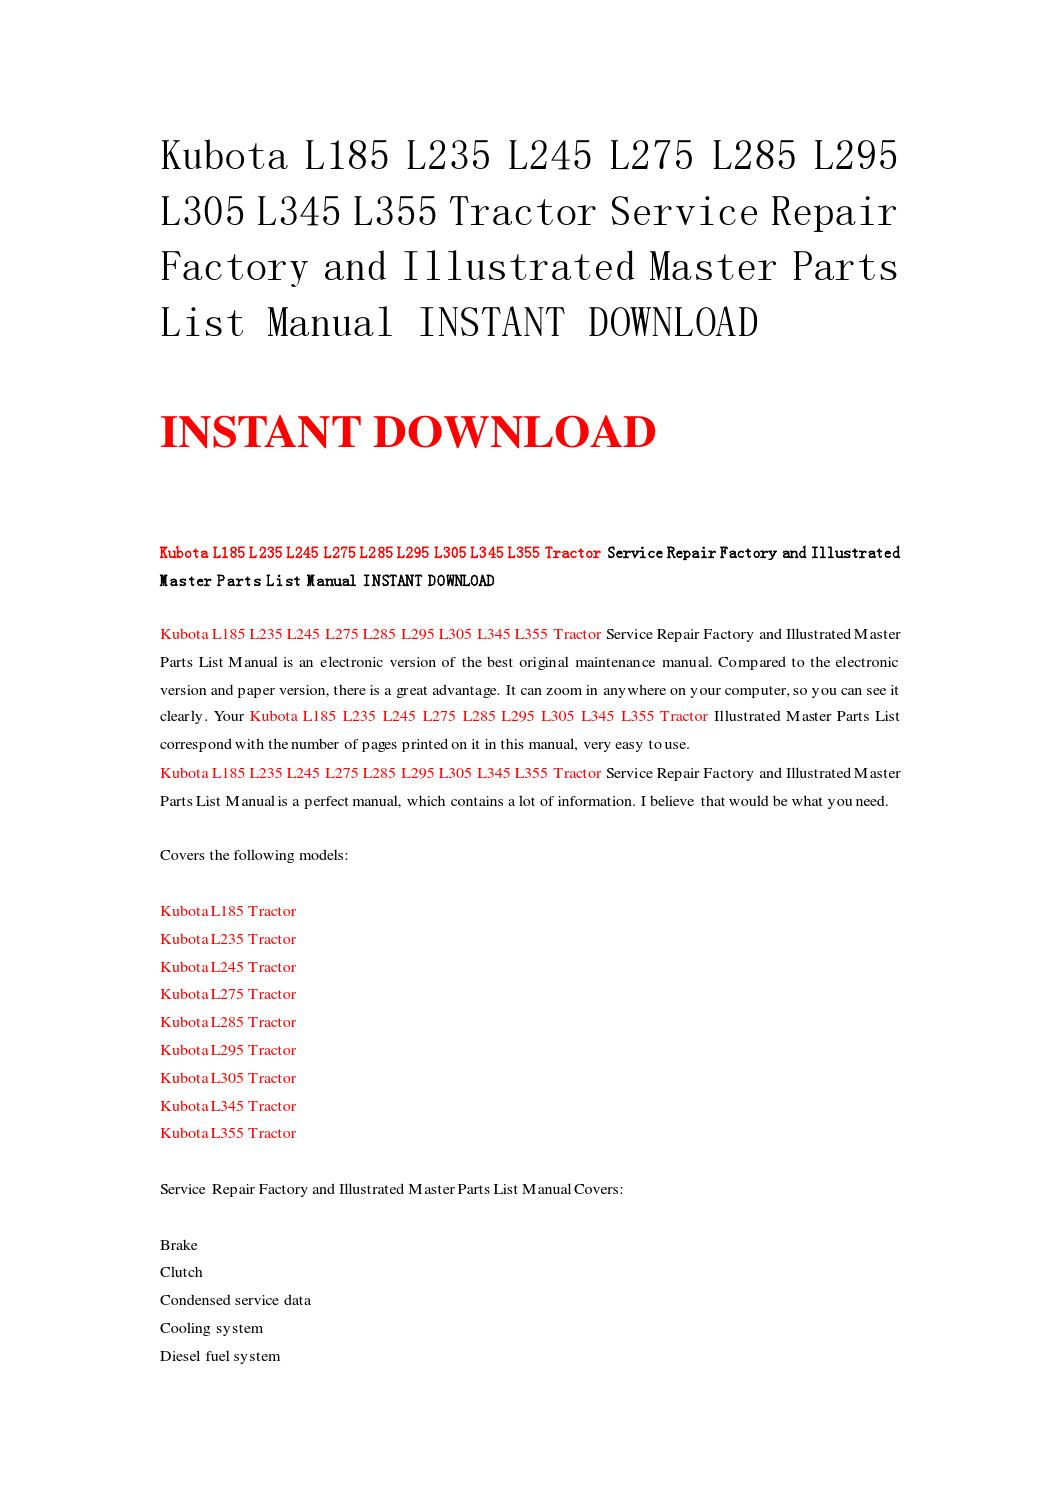 Kubota l185 l235 l245 l275 l285 l295 l305 l345 l355 tractor service repair  factory and illustrated m by k2repairmanual - issuu